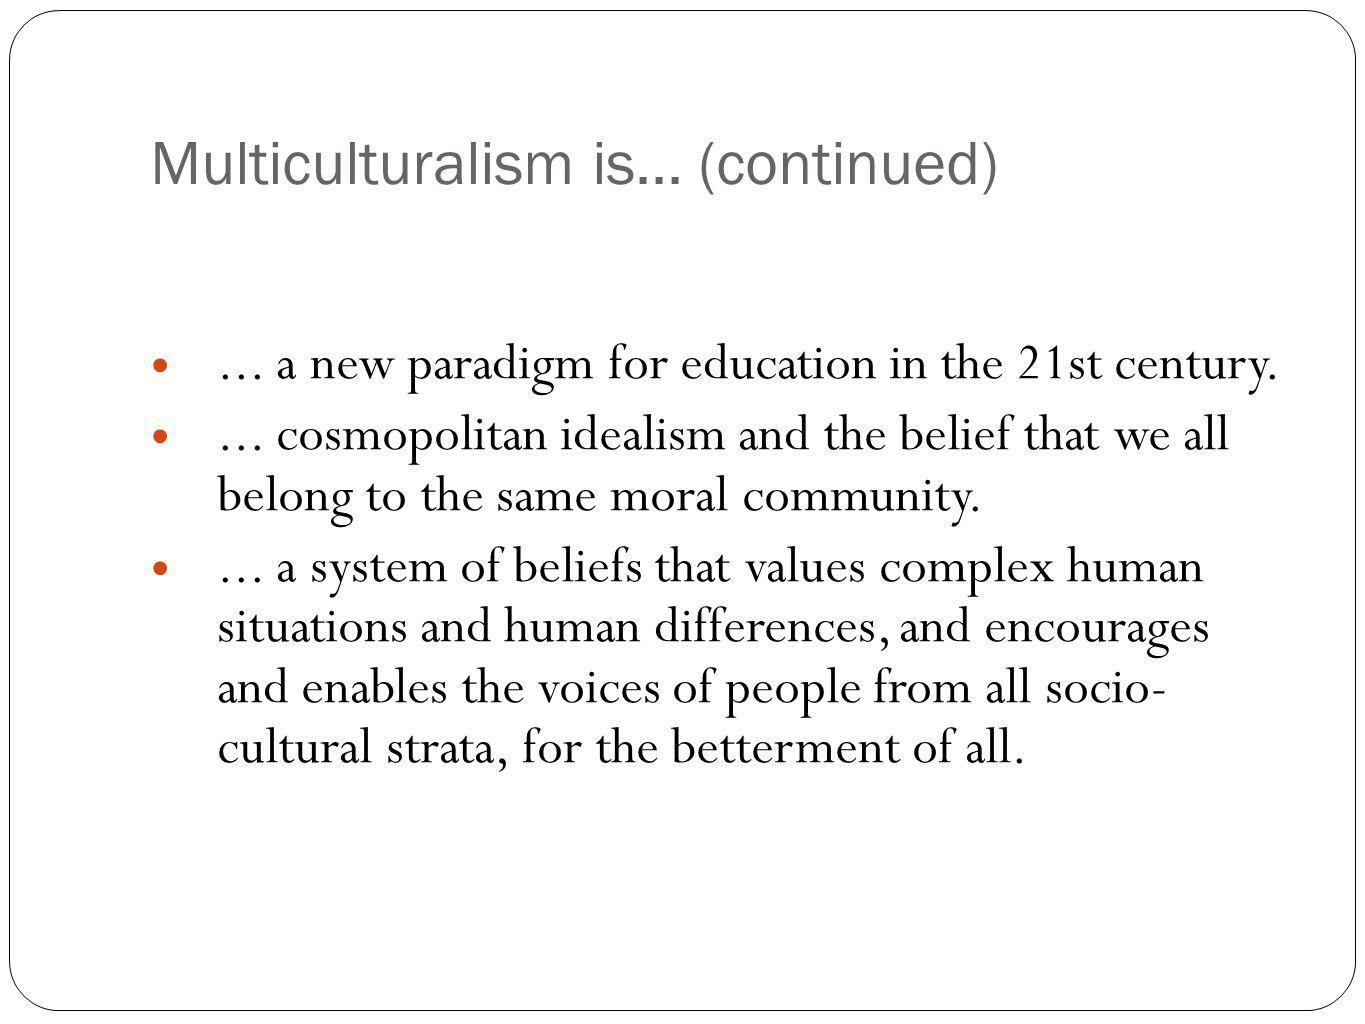 Multiculturalism is... (continued)... a new paradigm for education in the 21st century....